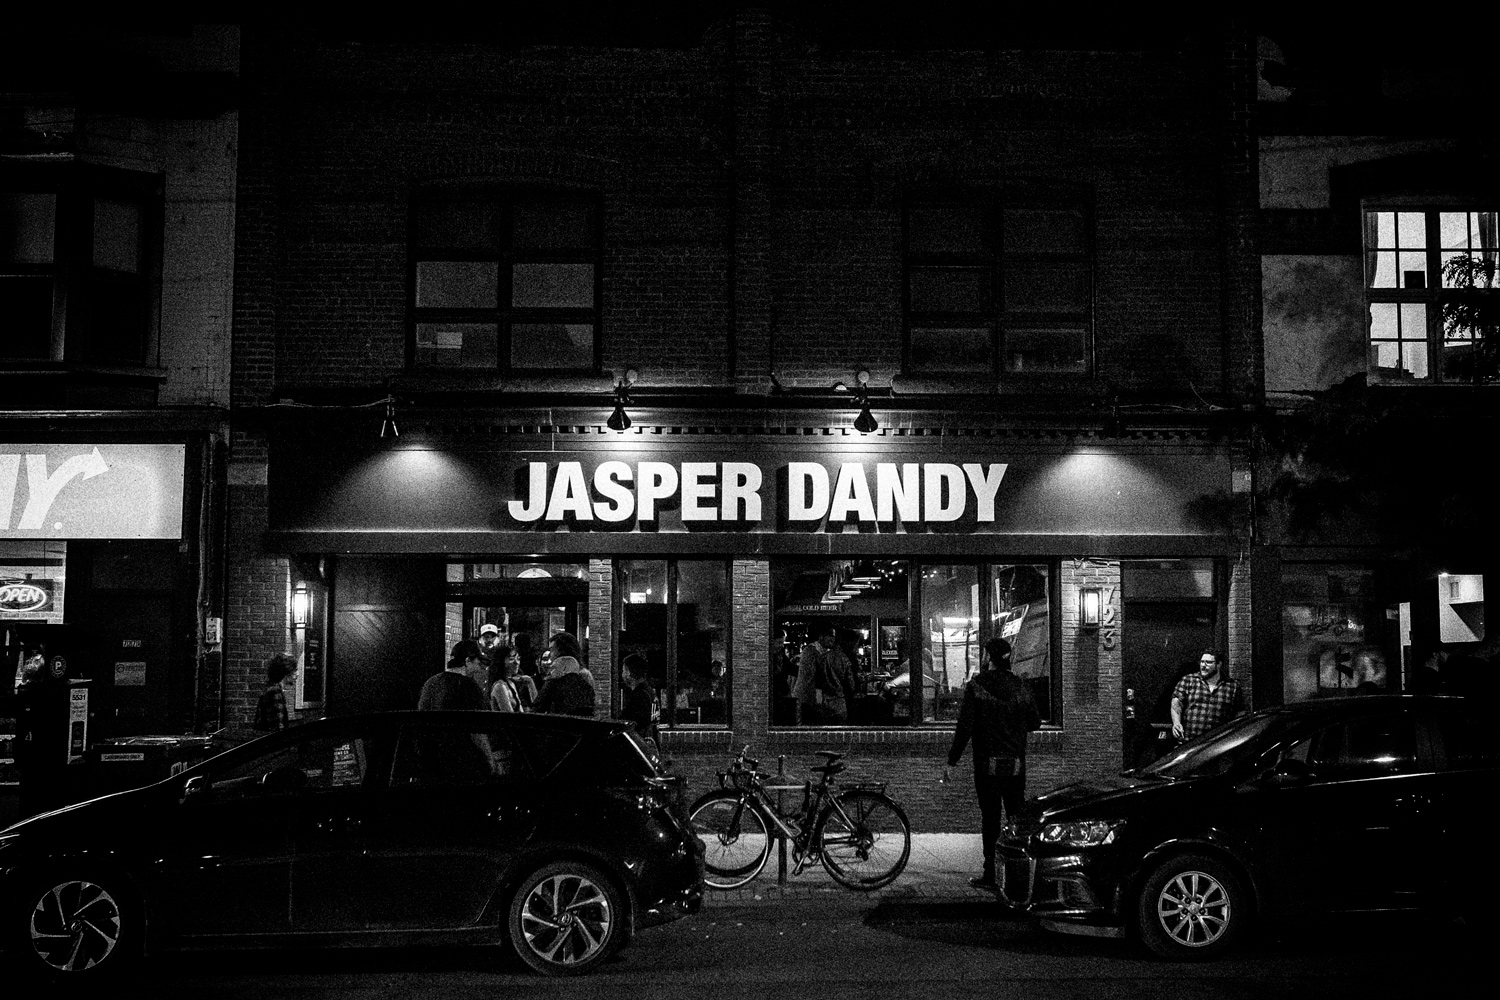 Jasoer Dandy